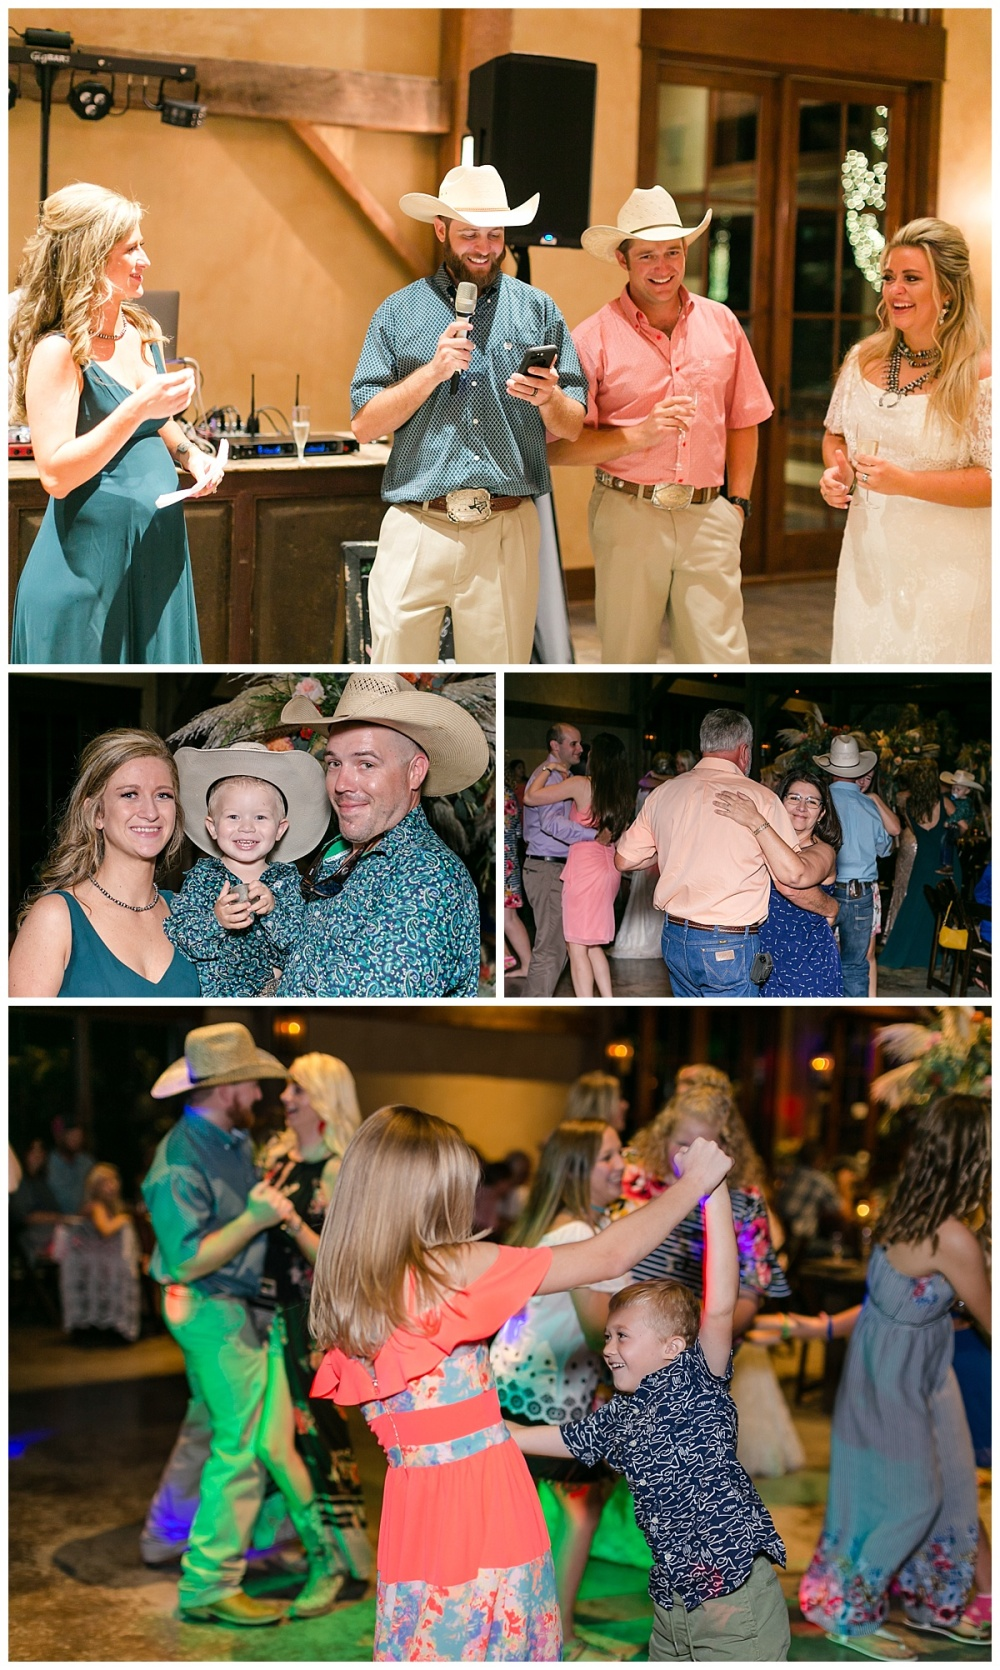 Texas-Wedding-Photographer-Braded-T-Ranch-Kendalia-Bride-Groom-Southwestern-Style-Carly-Barton-Photography-Vogt_0069.jpg